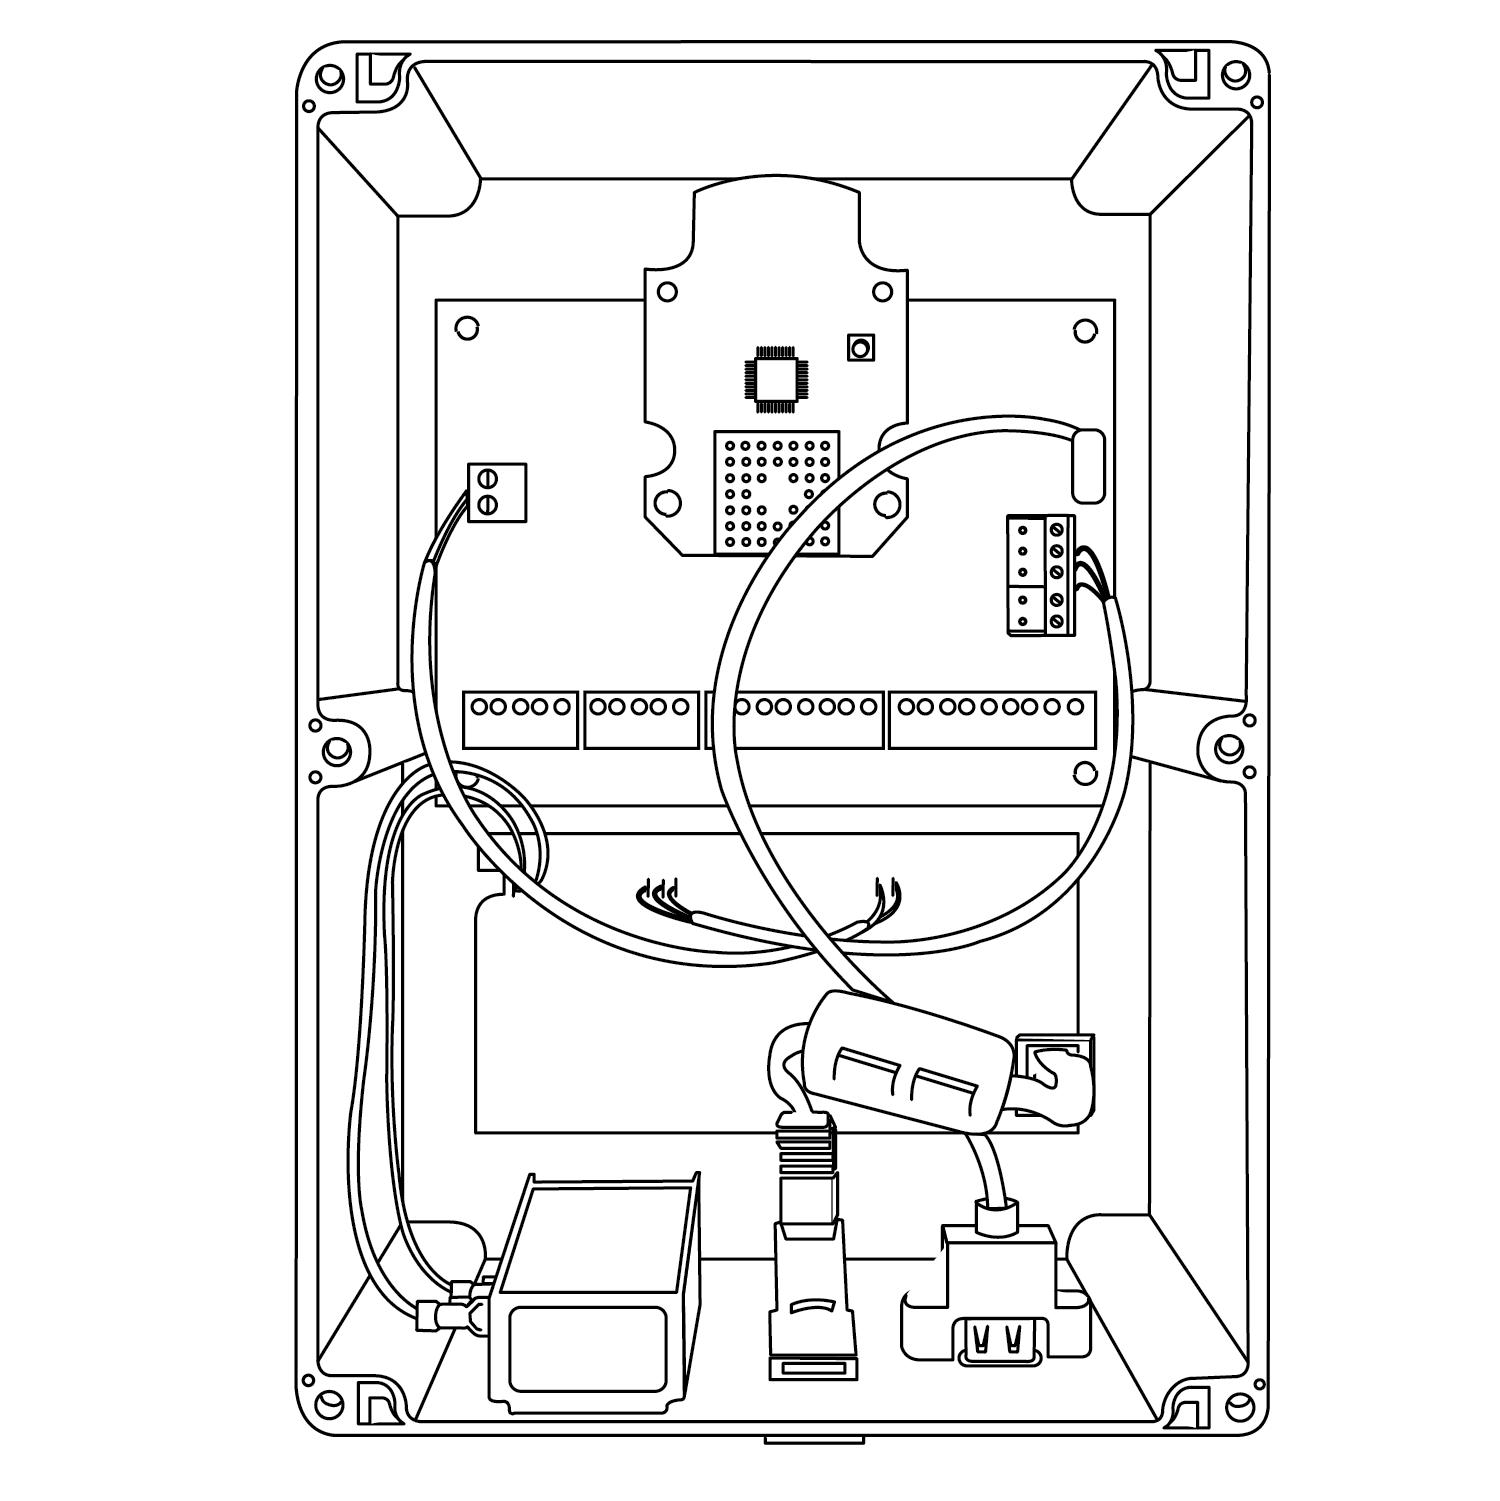 Sensaguard Wiring Diagram : 25 Wiring Diagram Images